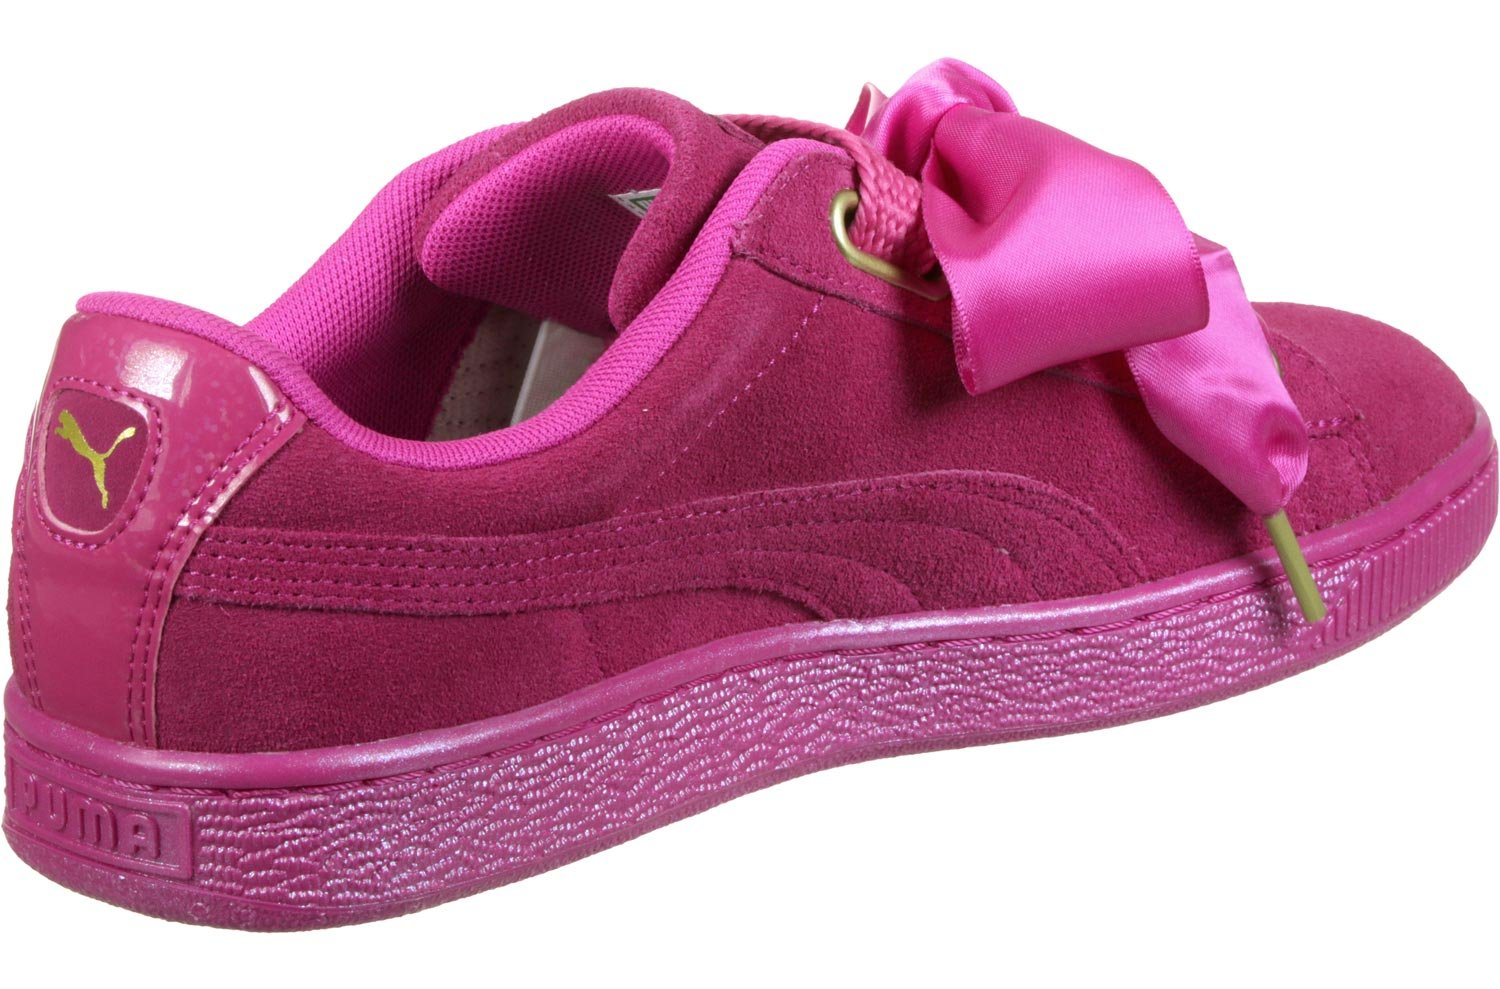 Puma Suede Heart II, Satin II, Sneakers Basses Heart Femme Suede Rose (Magenta) a6516c6 - piero.space